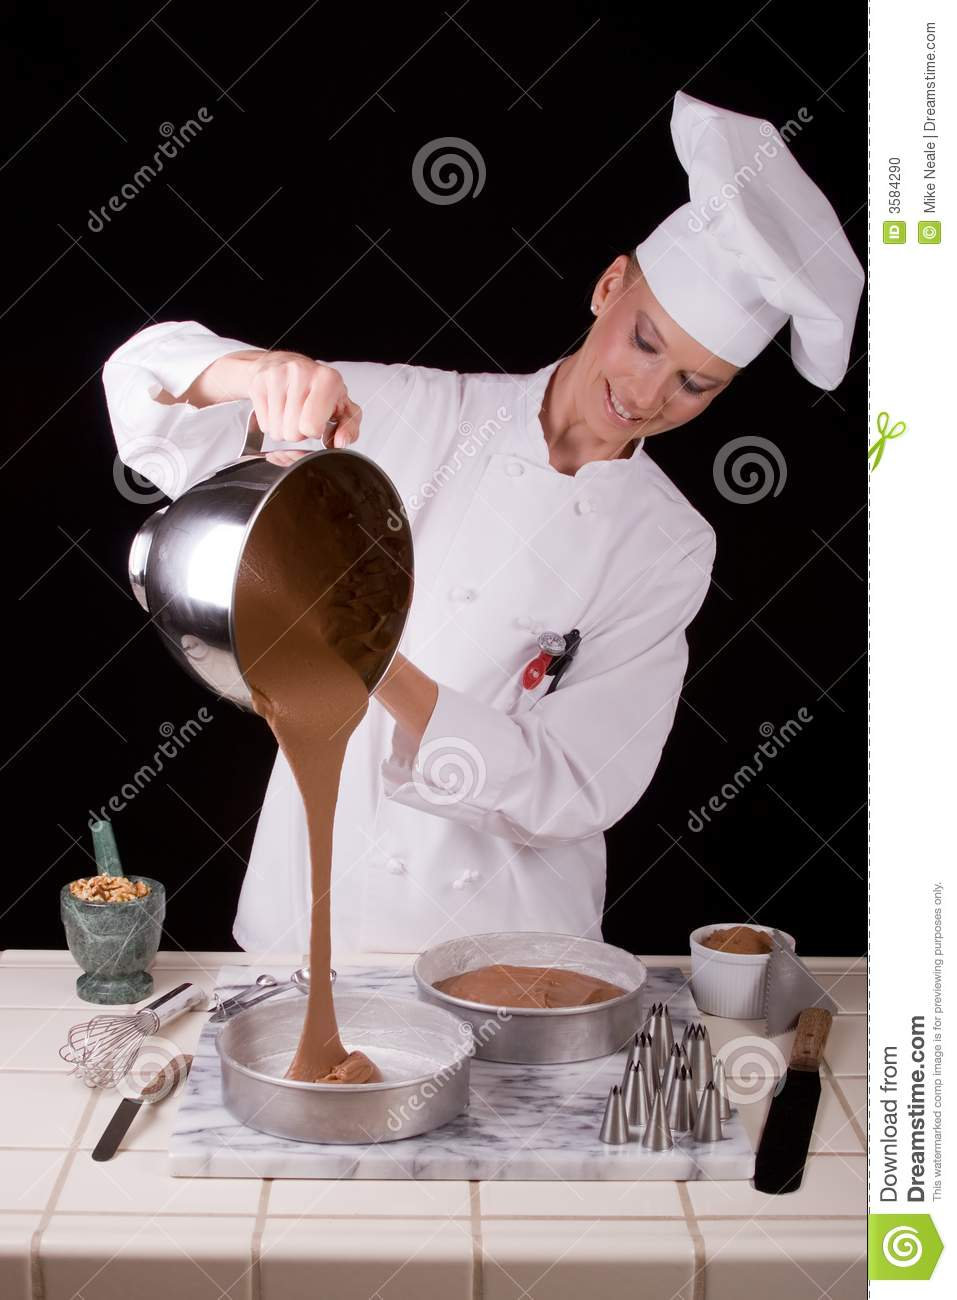 Pouring Cake Batter Stock Photo Image 3584290